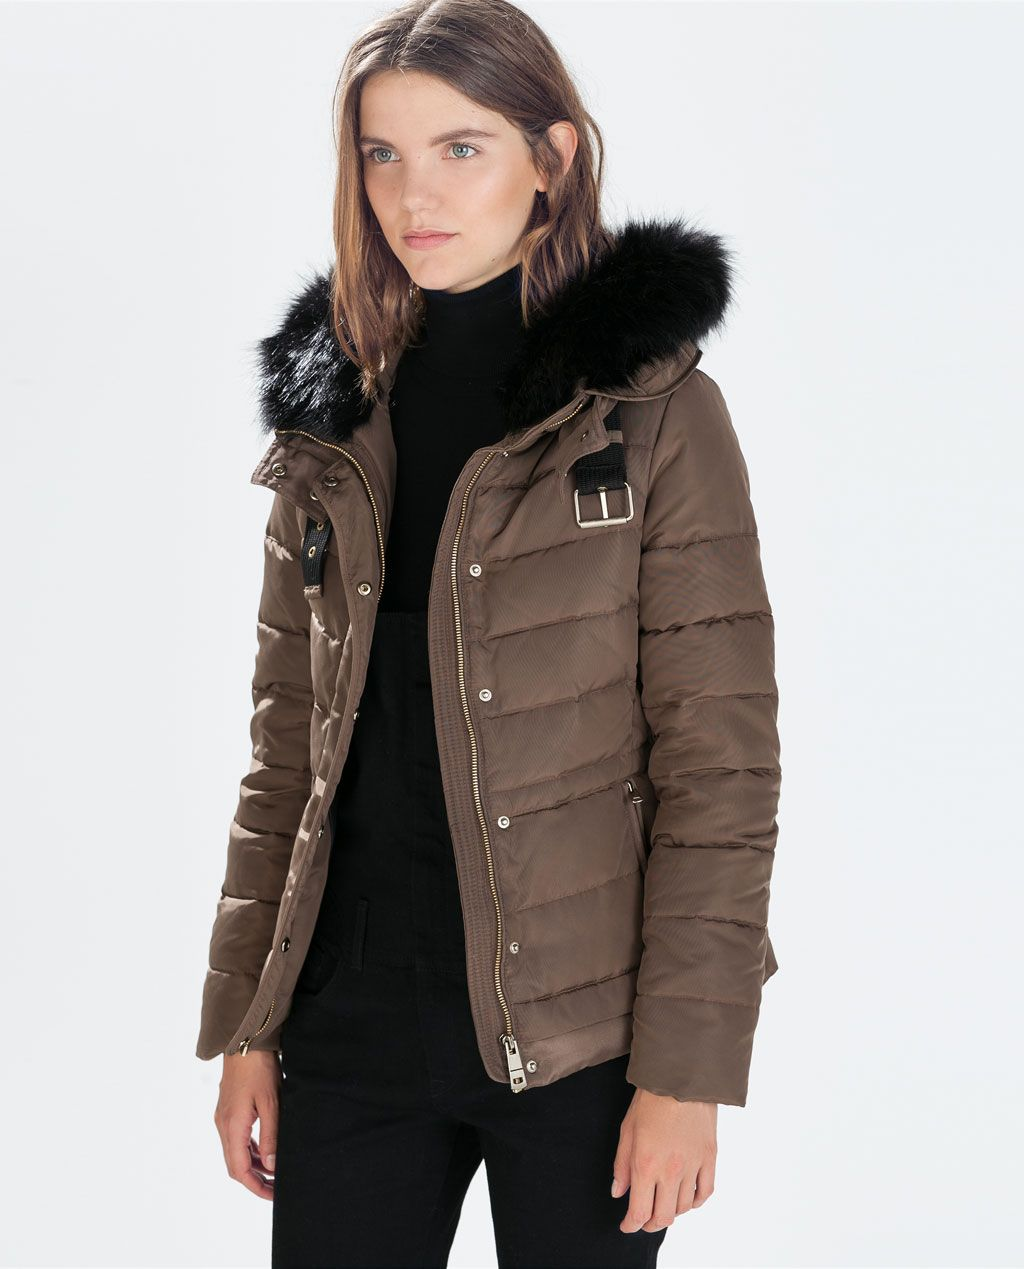 moncler@#$99 on | new york fashion in 2019 | Winter jackets